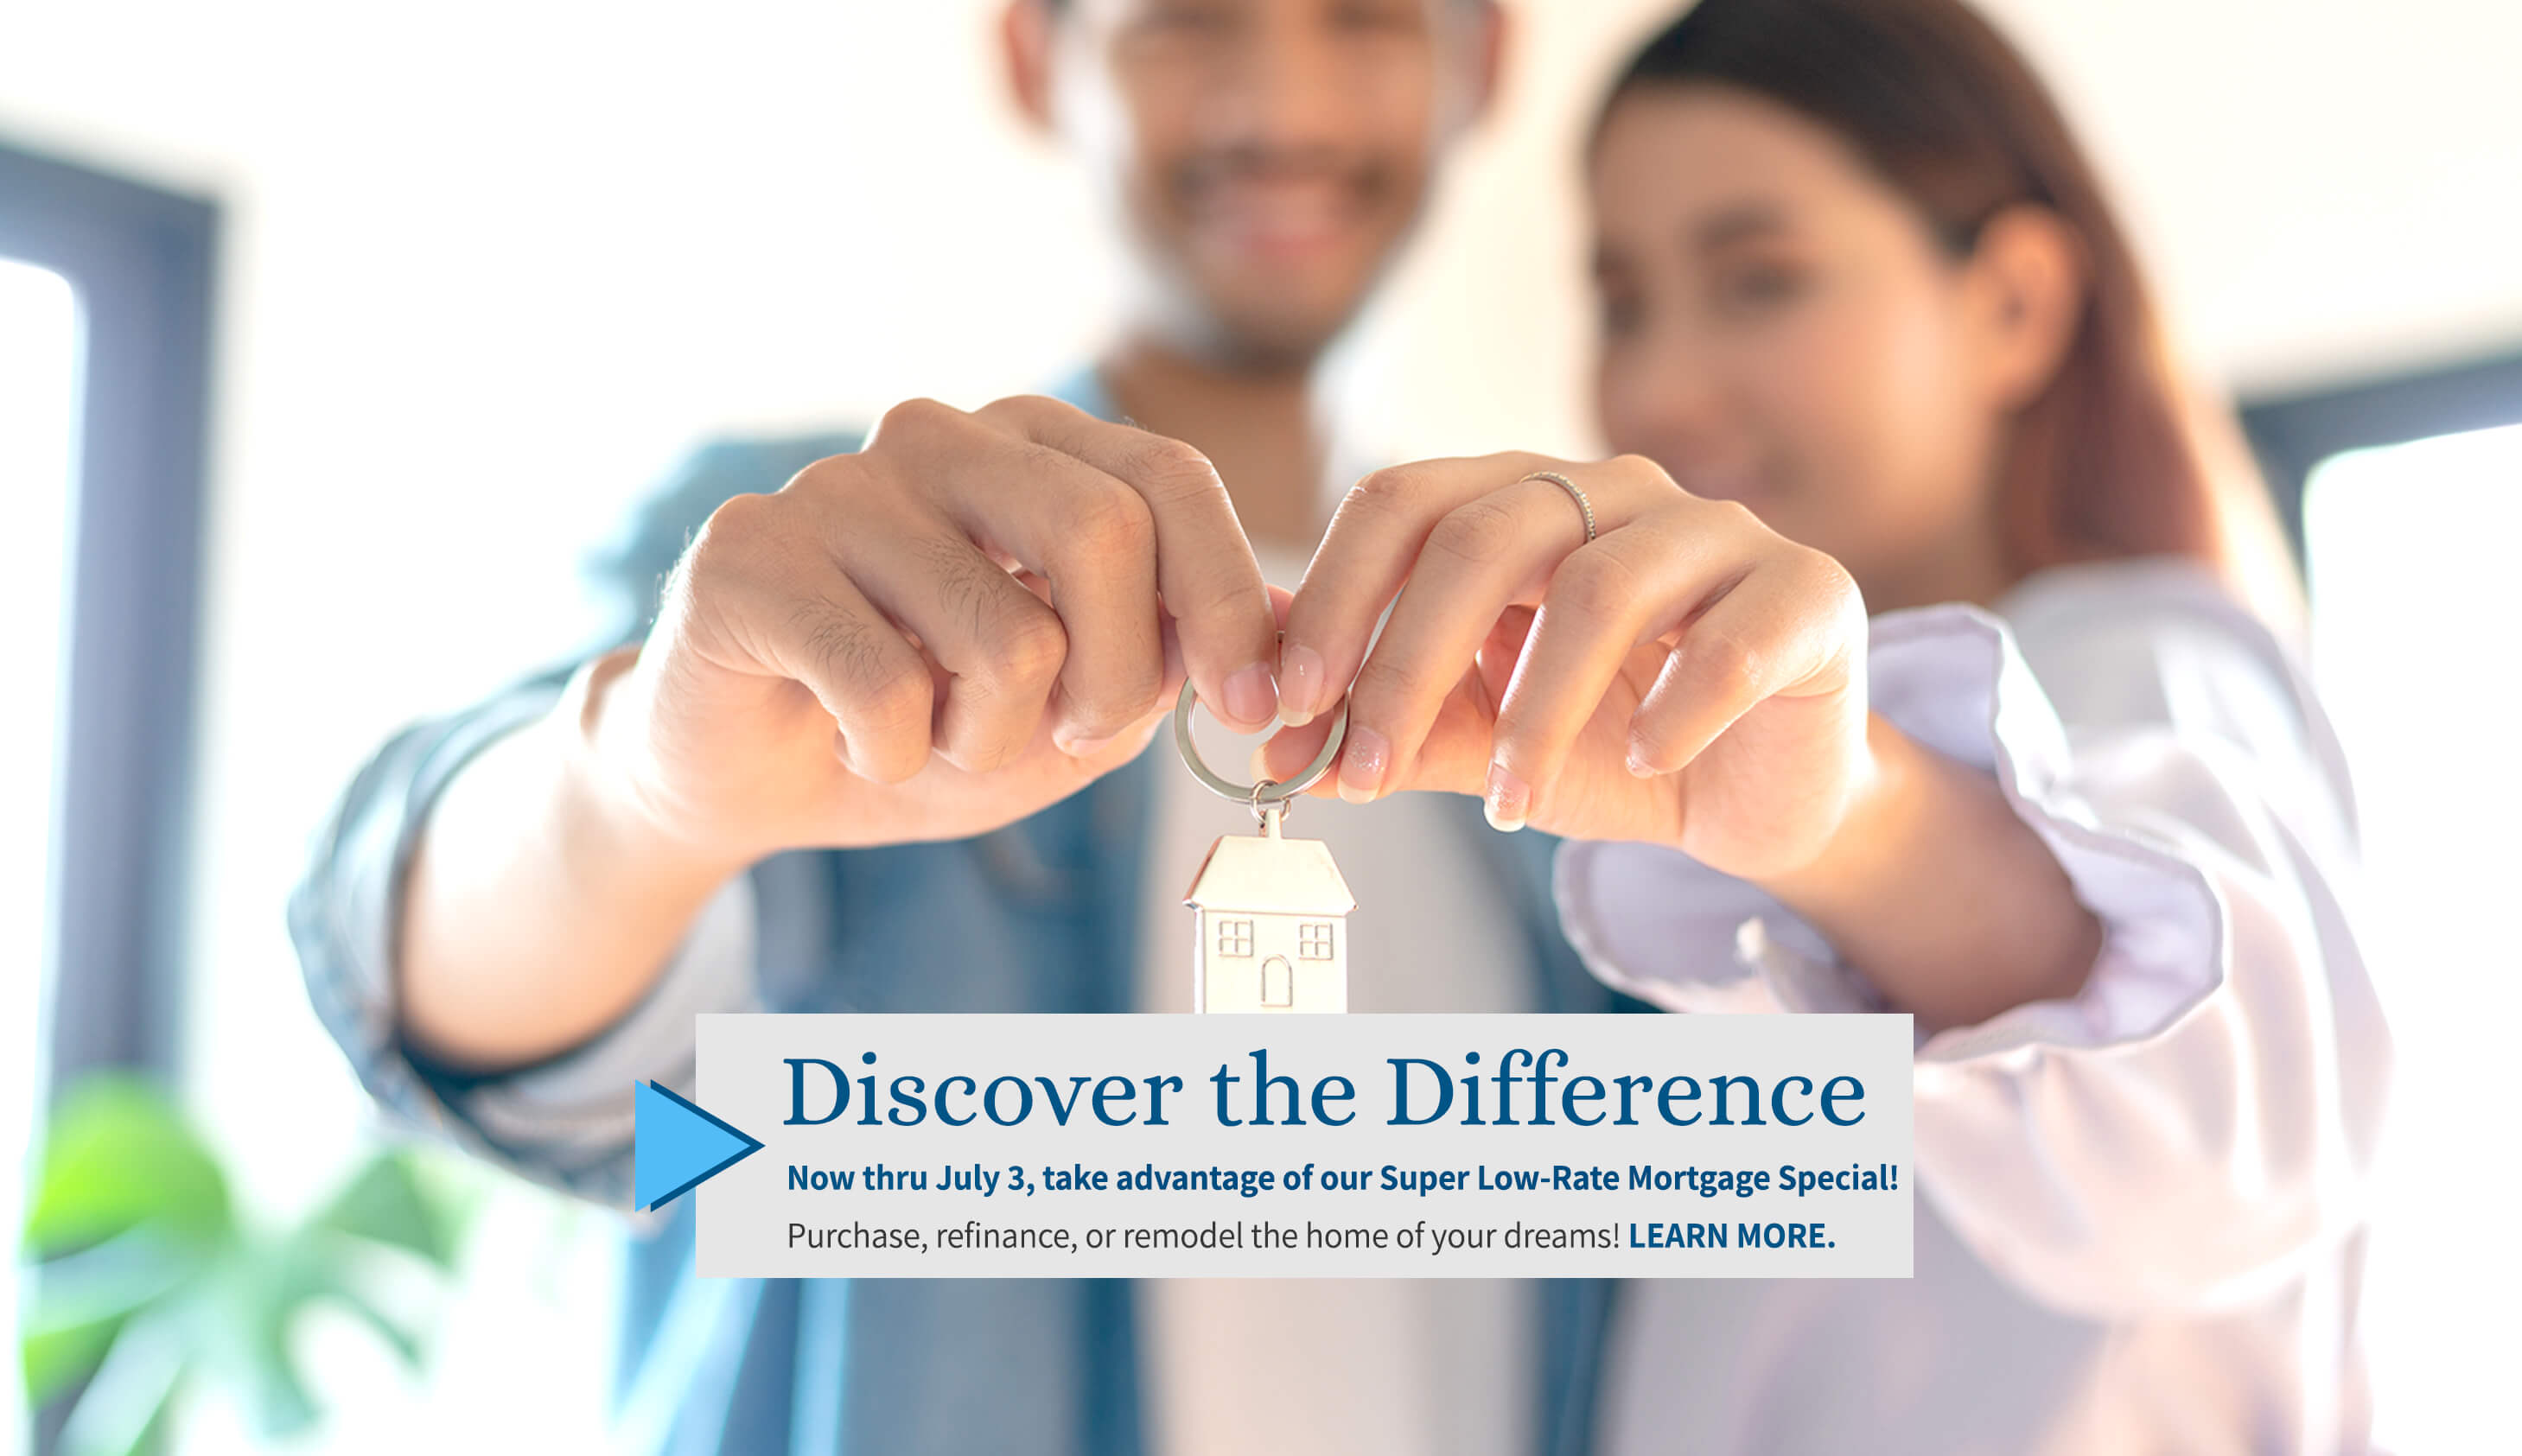 Discover the difference. Now thru July 3, take advantage of our Super Low-Rate Mortgage Special! Purchase, refinance, or remodel the home of your dreams! Learn more.